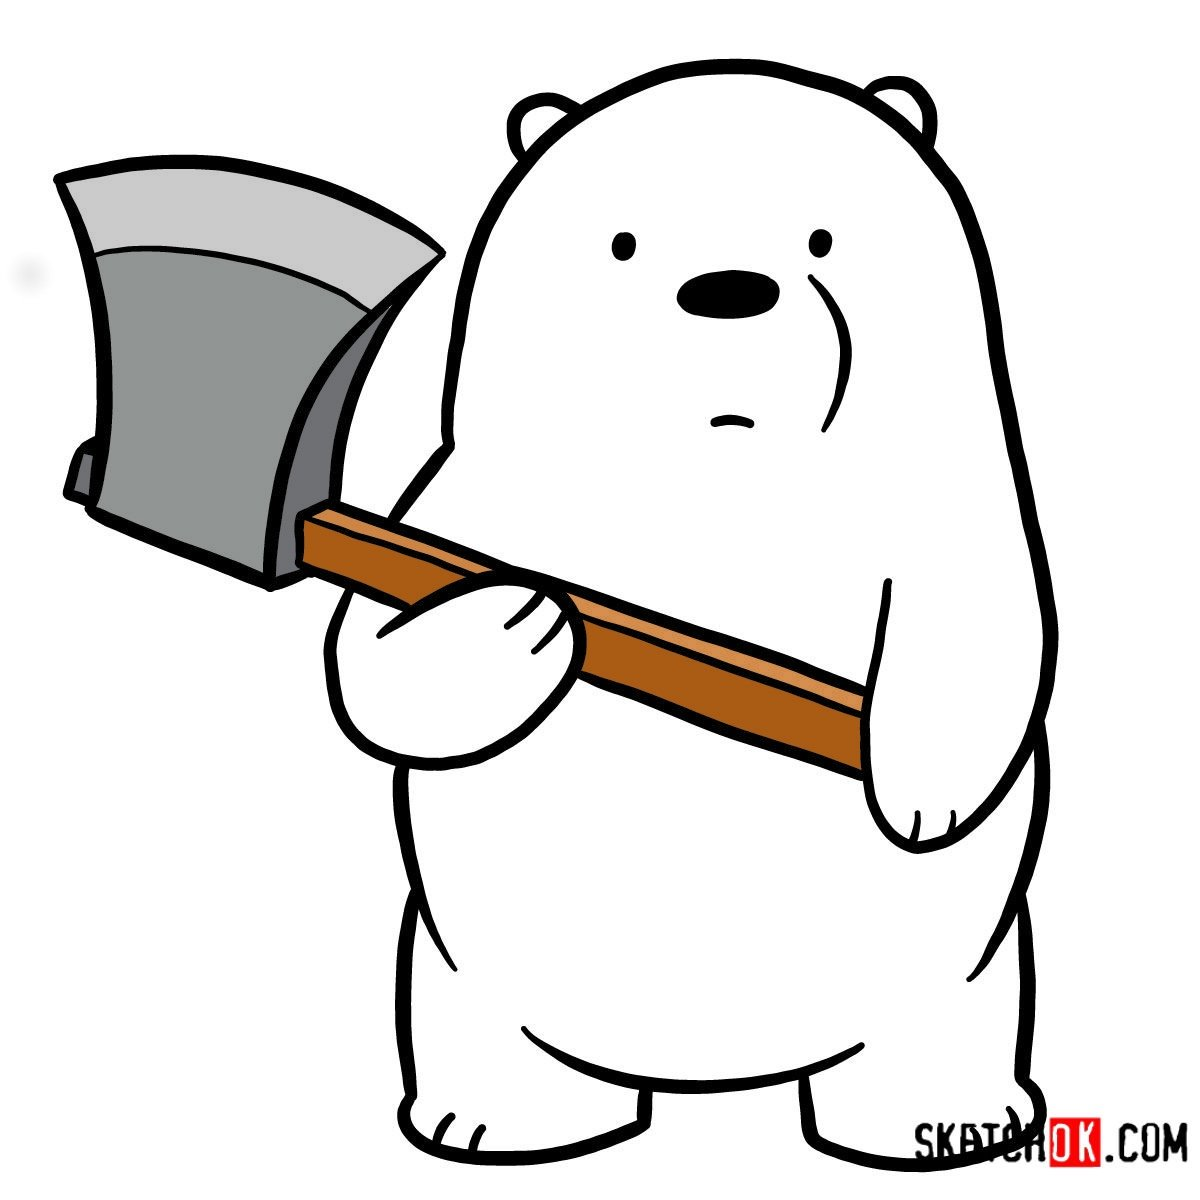 How to draw Ice Bear with an axe | We Bare Bears